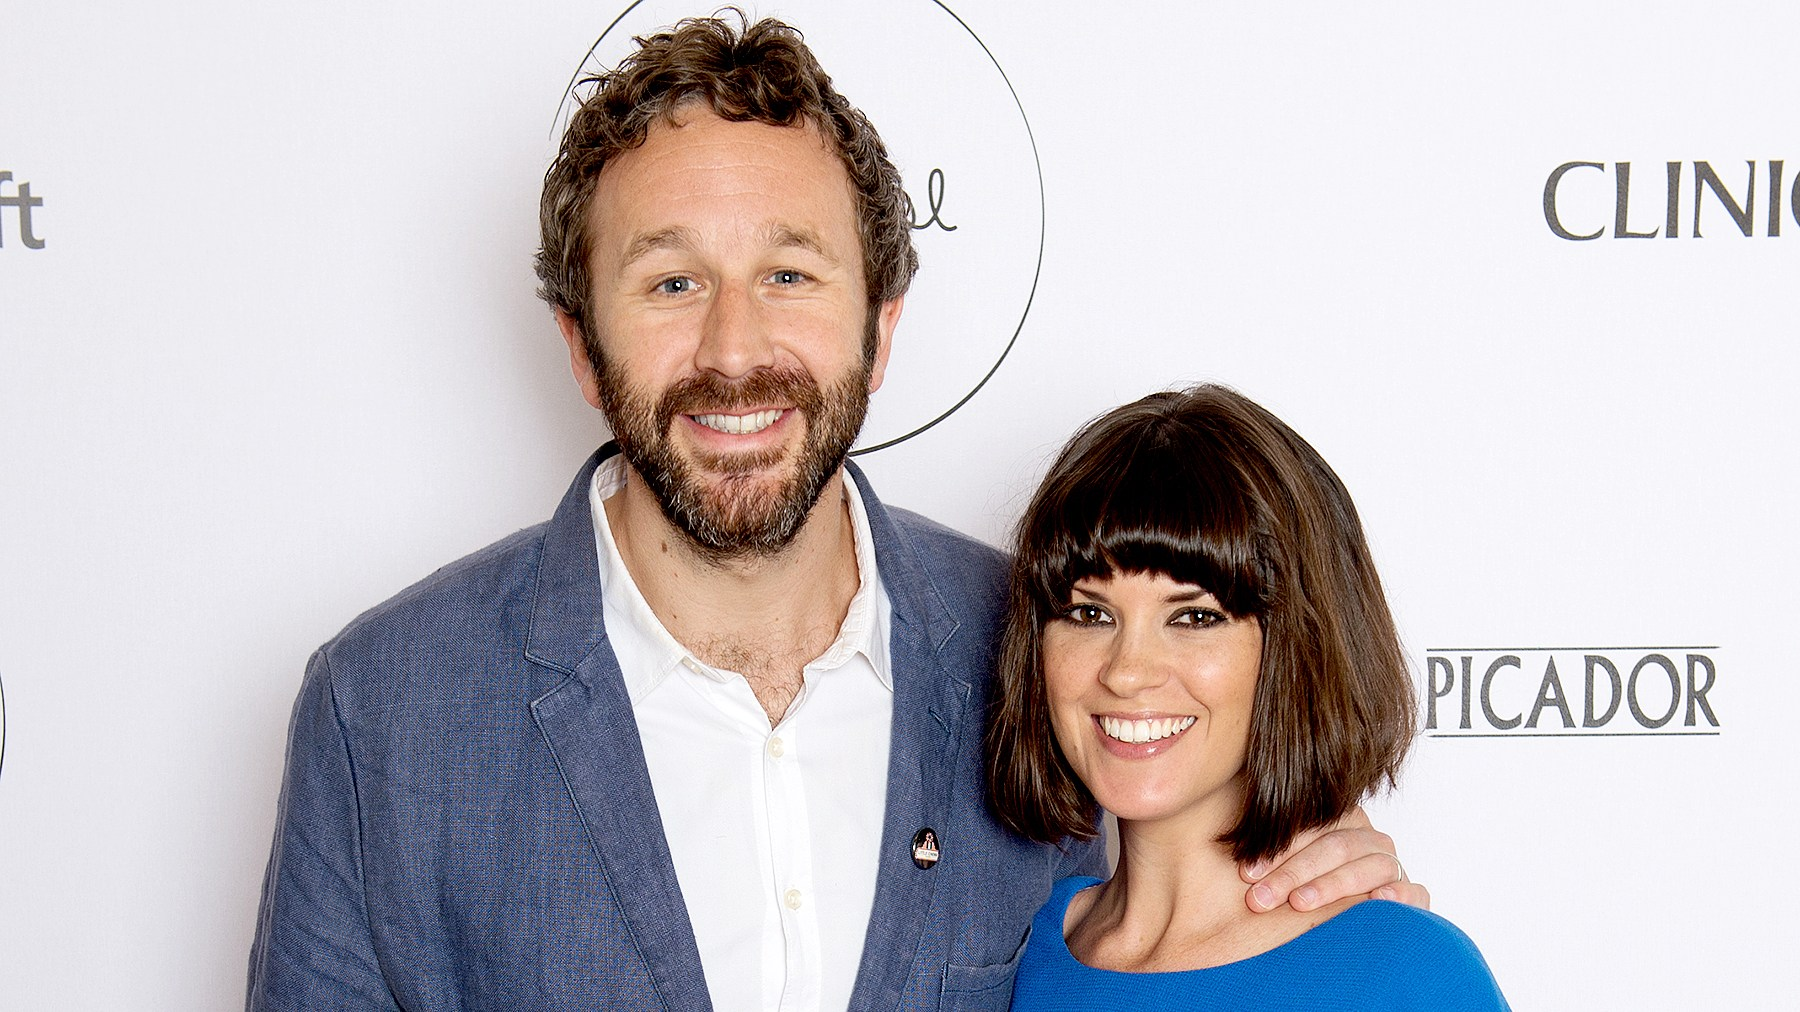 Chris O'Dowd and Dawn O'Porter attend the launch party for The Pool, a unique multi-media platform for busy women co-founded by renowned editor and journalist Sam Baker and broadcaster Lauren Laverne, on April 23, 2015 in London, England.